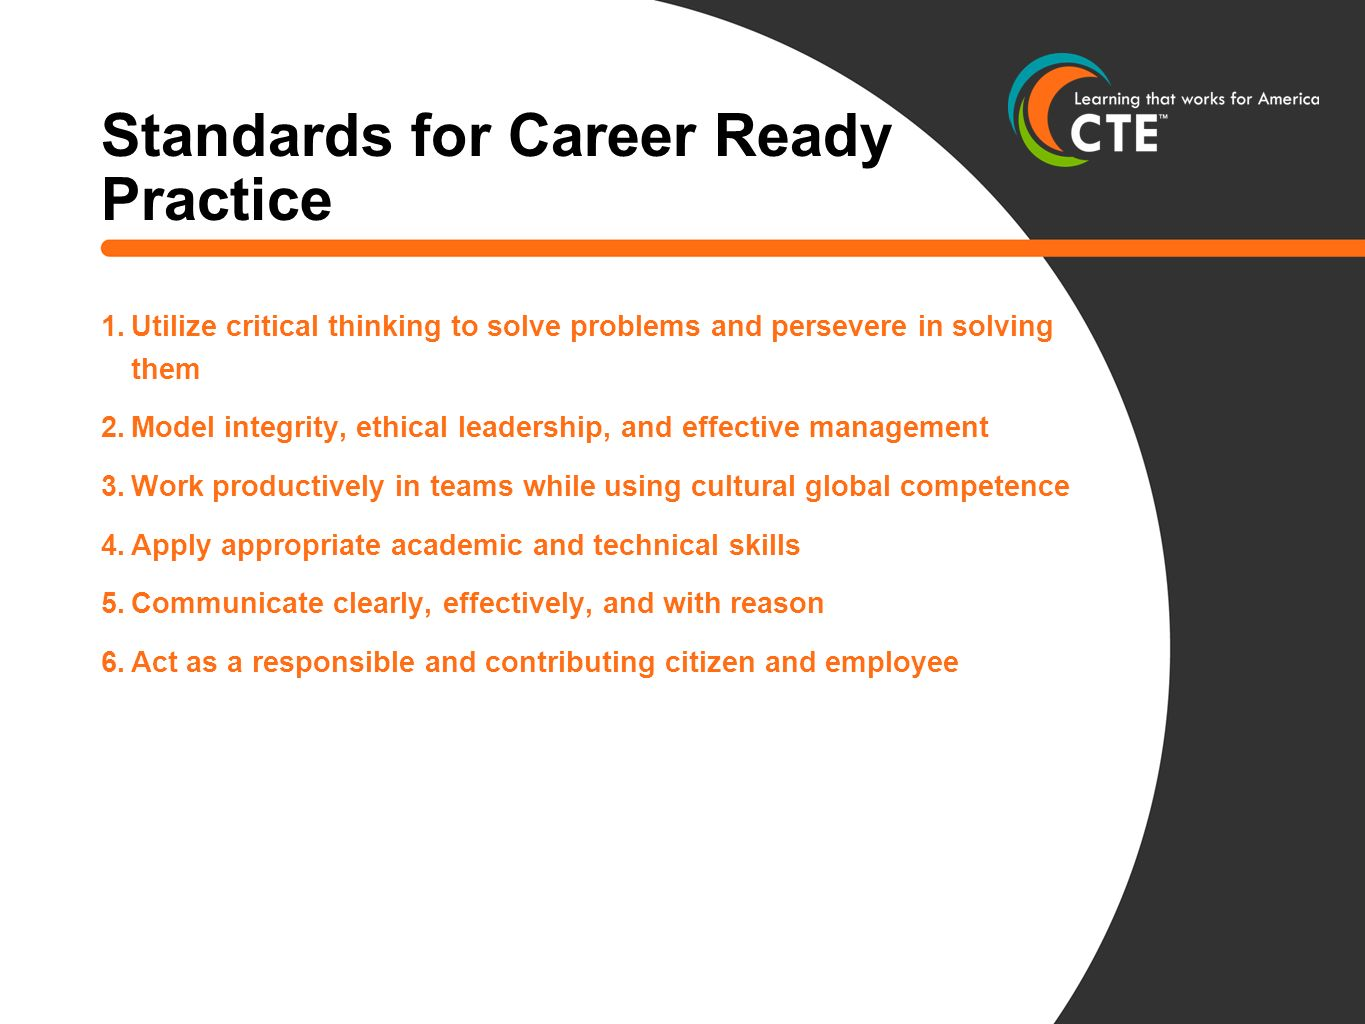 Standards for Career Ready Practice 1.Utilize critical thinking to solve problems and persevere in solving them 2.Model integrity, ethical leadership, and effective management 3.Work productively in teams while using cultural global competence 4.Apply appropriate academic and technical skills 5.Communicate clearly, effectively, and with reason 6.Act as a responsible and contributing citizen and employee